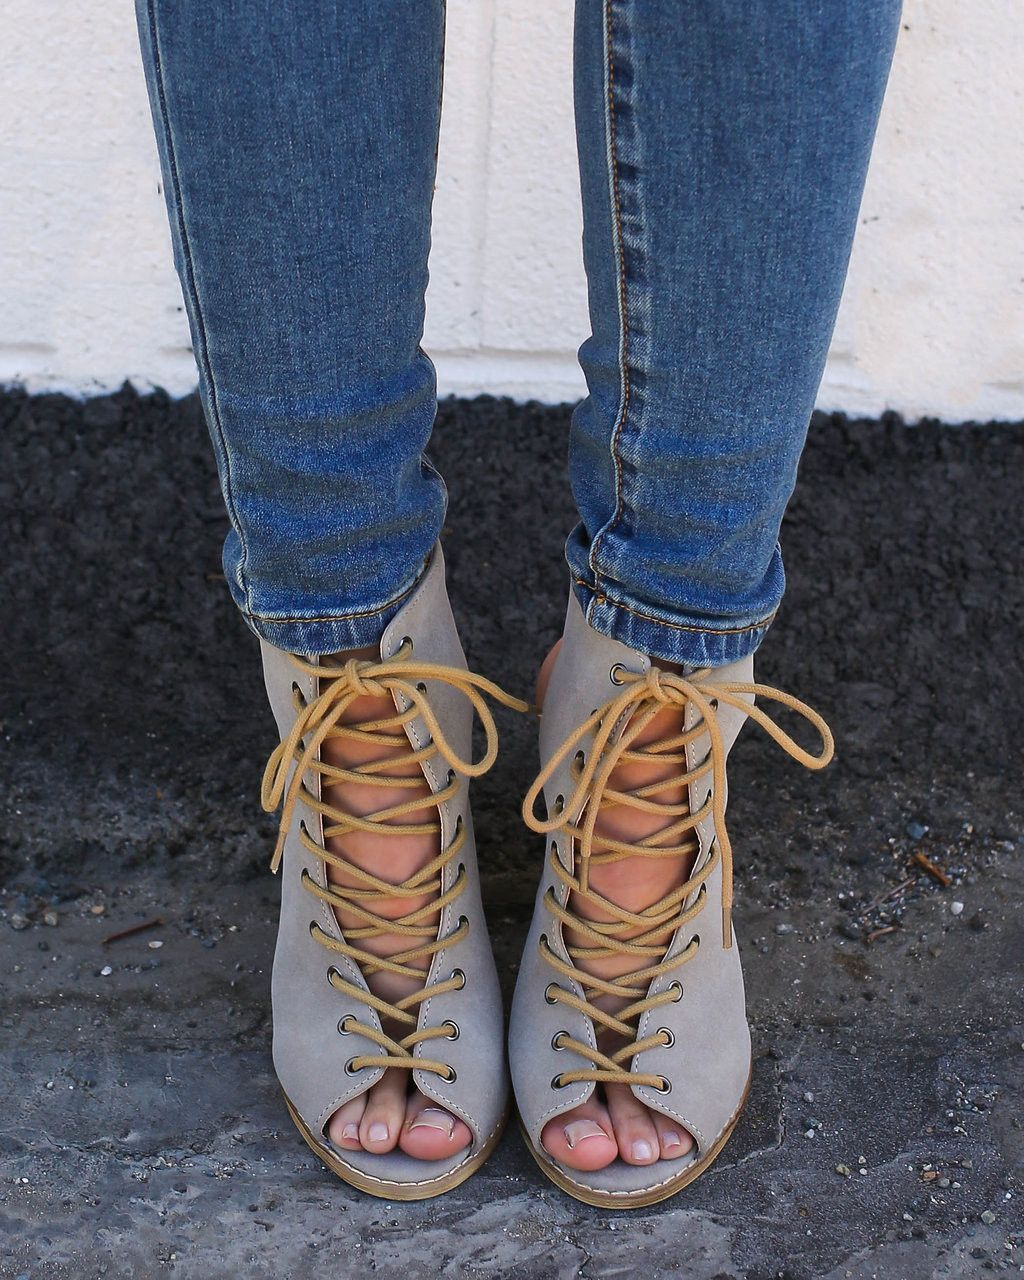 Montana Lace Up Stacked Heel - Beige - ITEM OF THE DAY